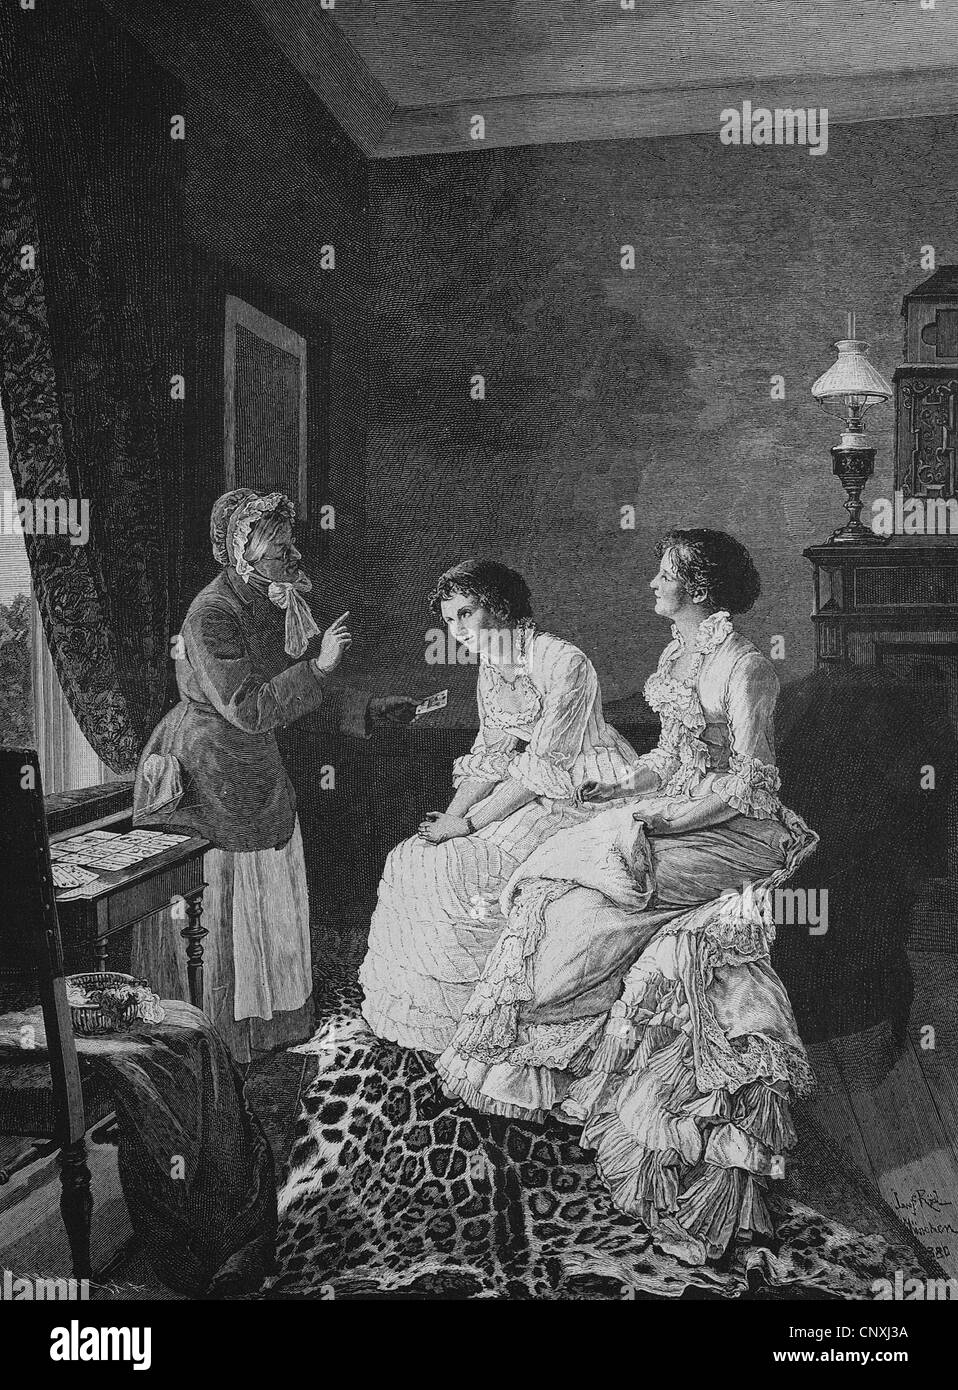 At the fortune-teller, historical engraving, 1883 - Stock Image